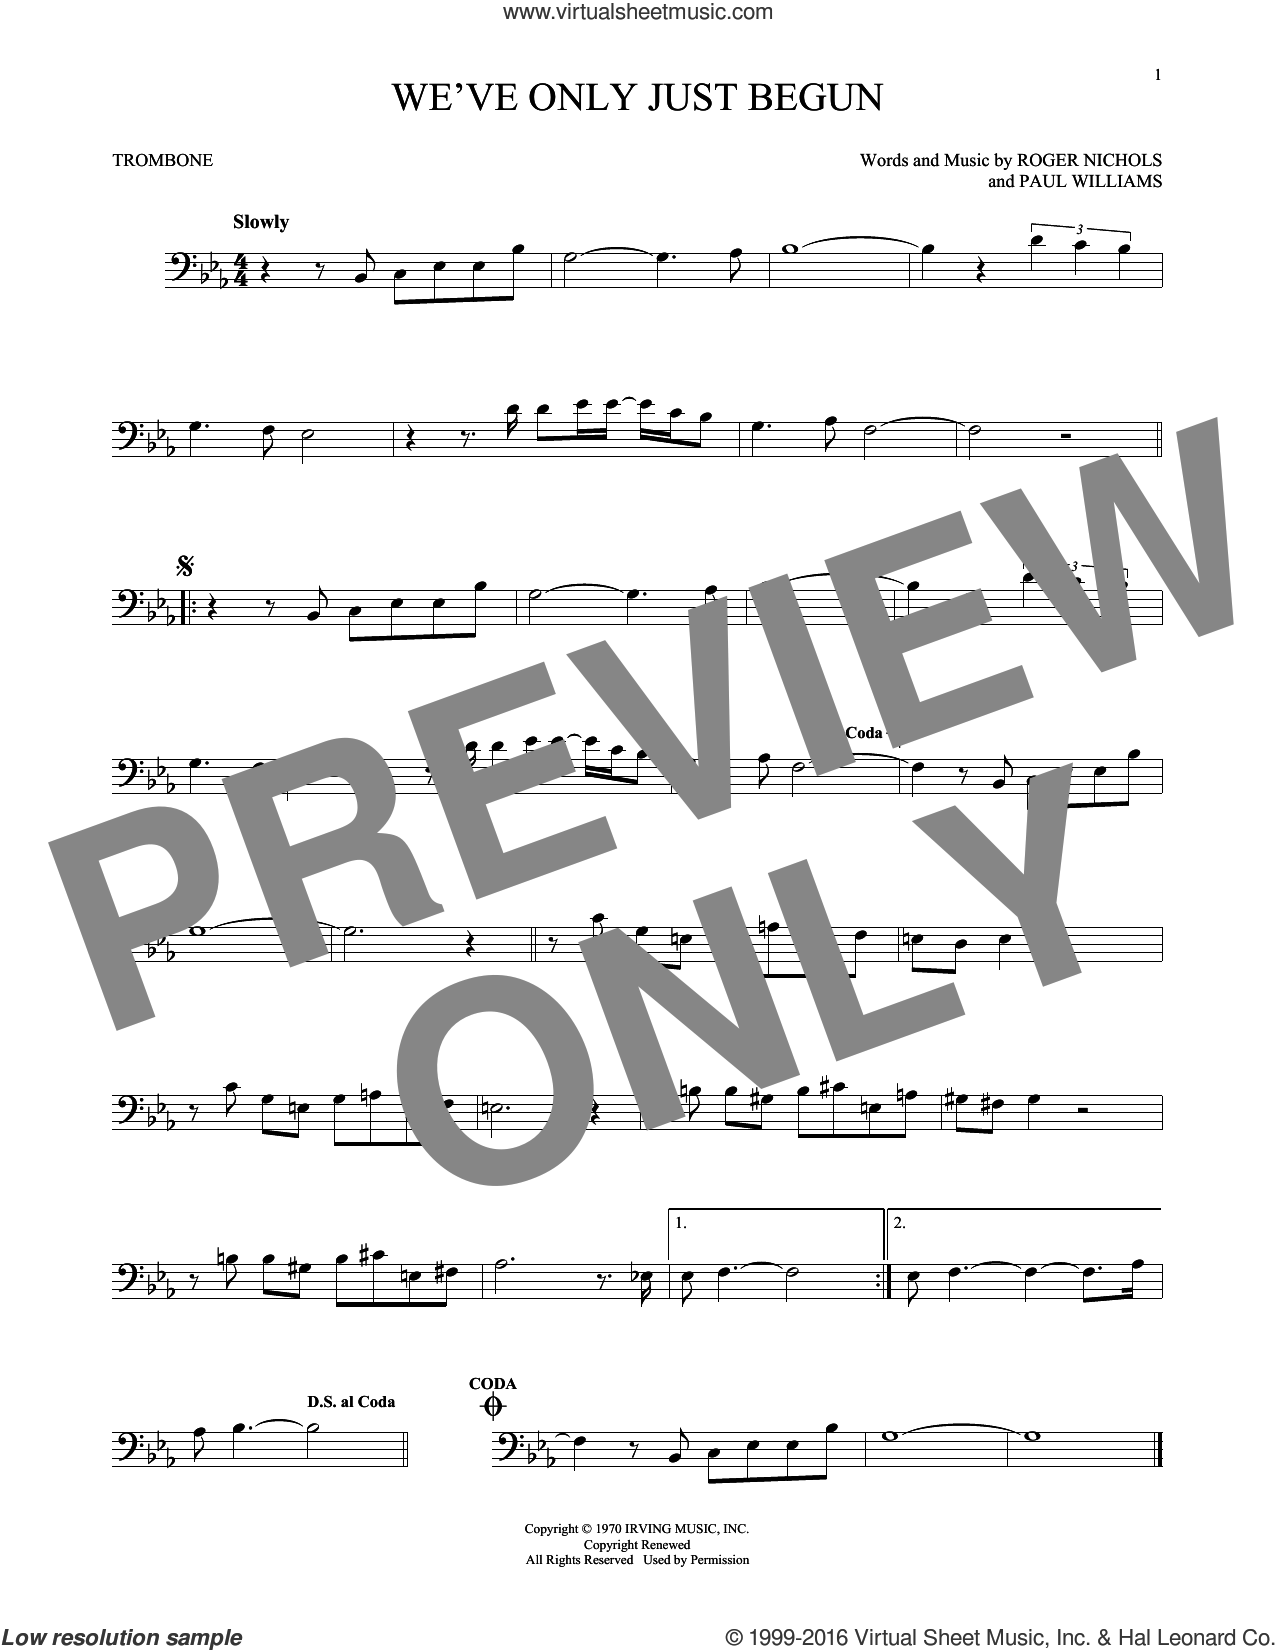 We've Only Just Begun sheet music for trombone solo by Paul Williams, Carpenters and Roger Nichols, intermediate skill level